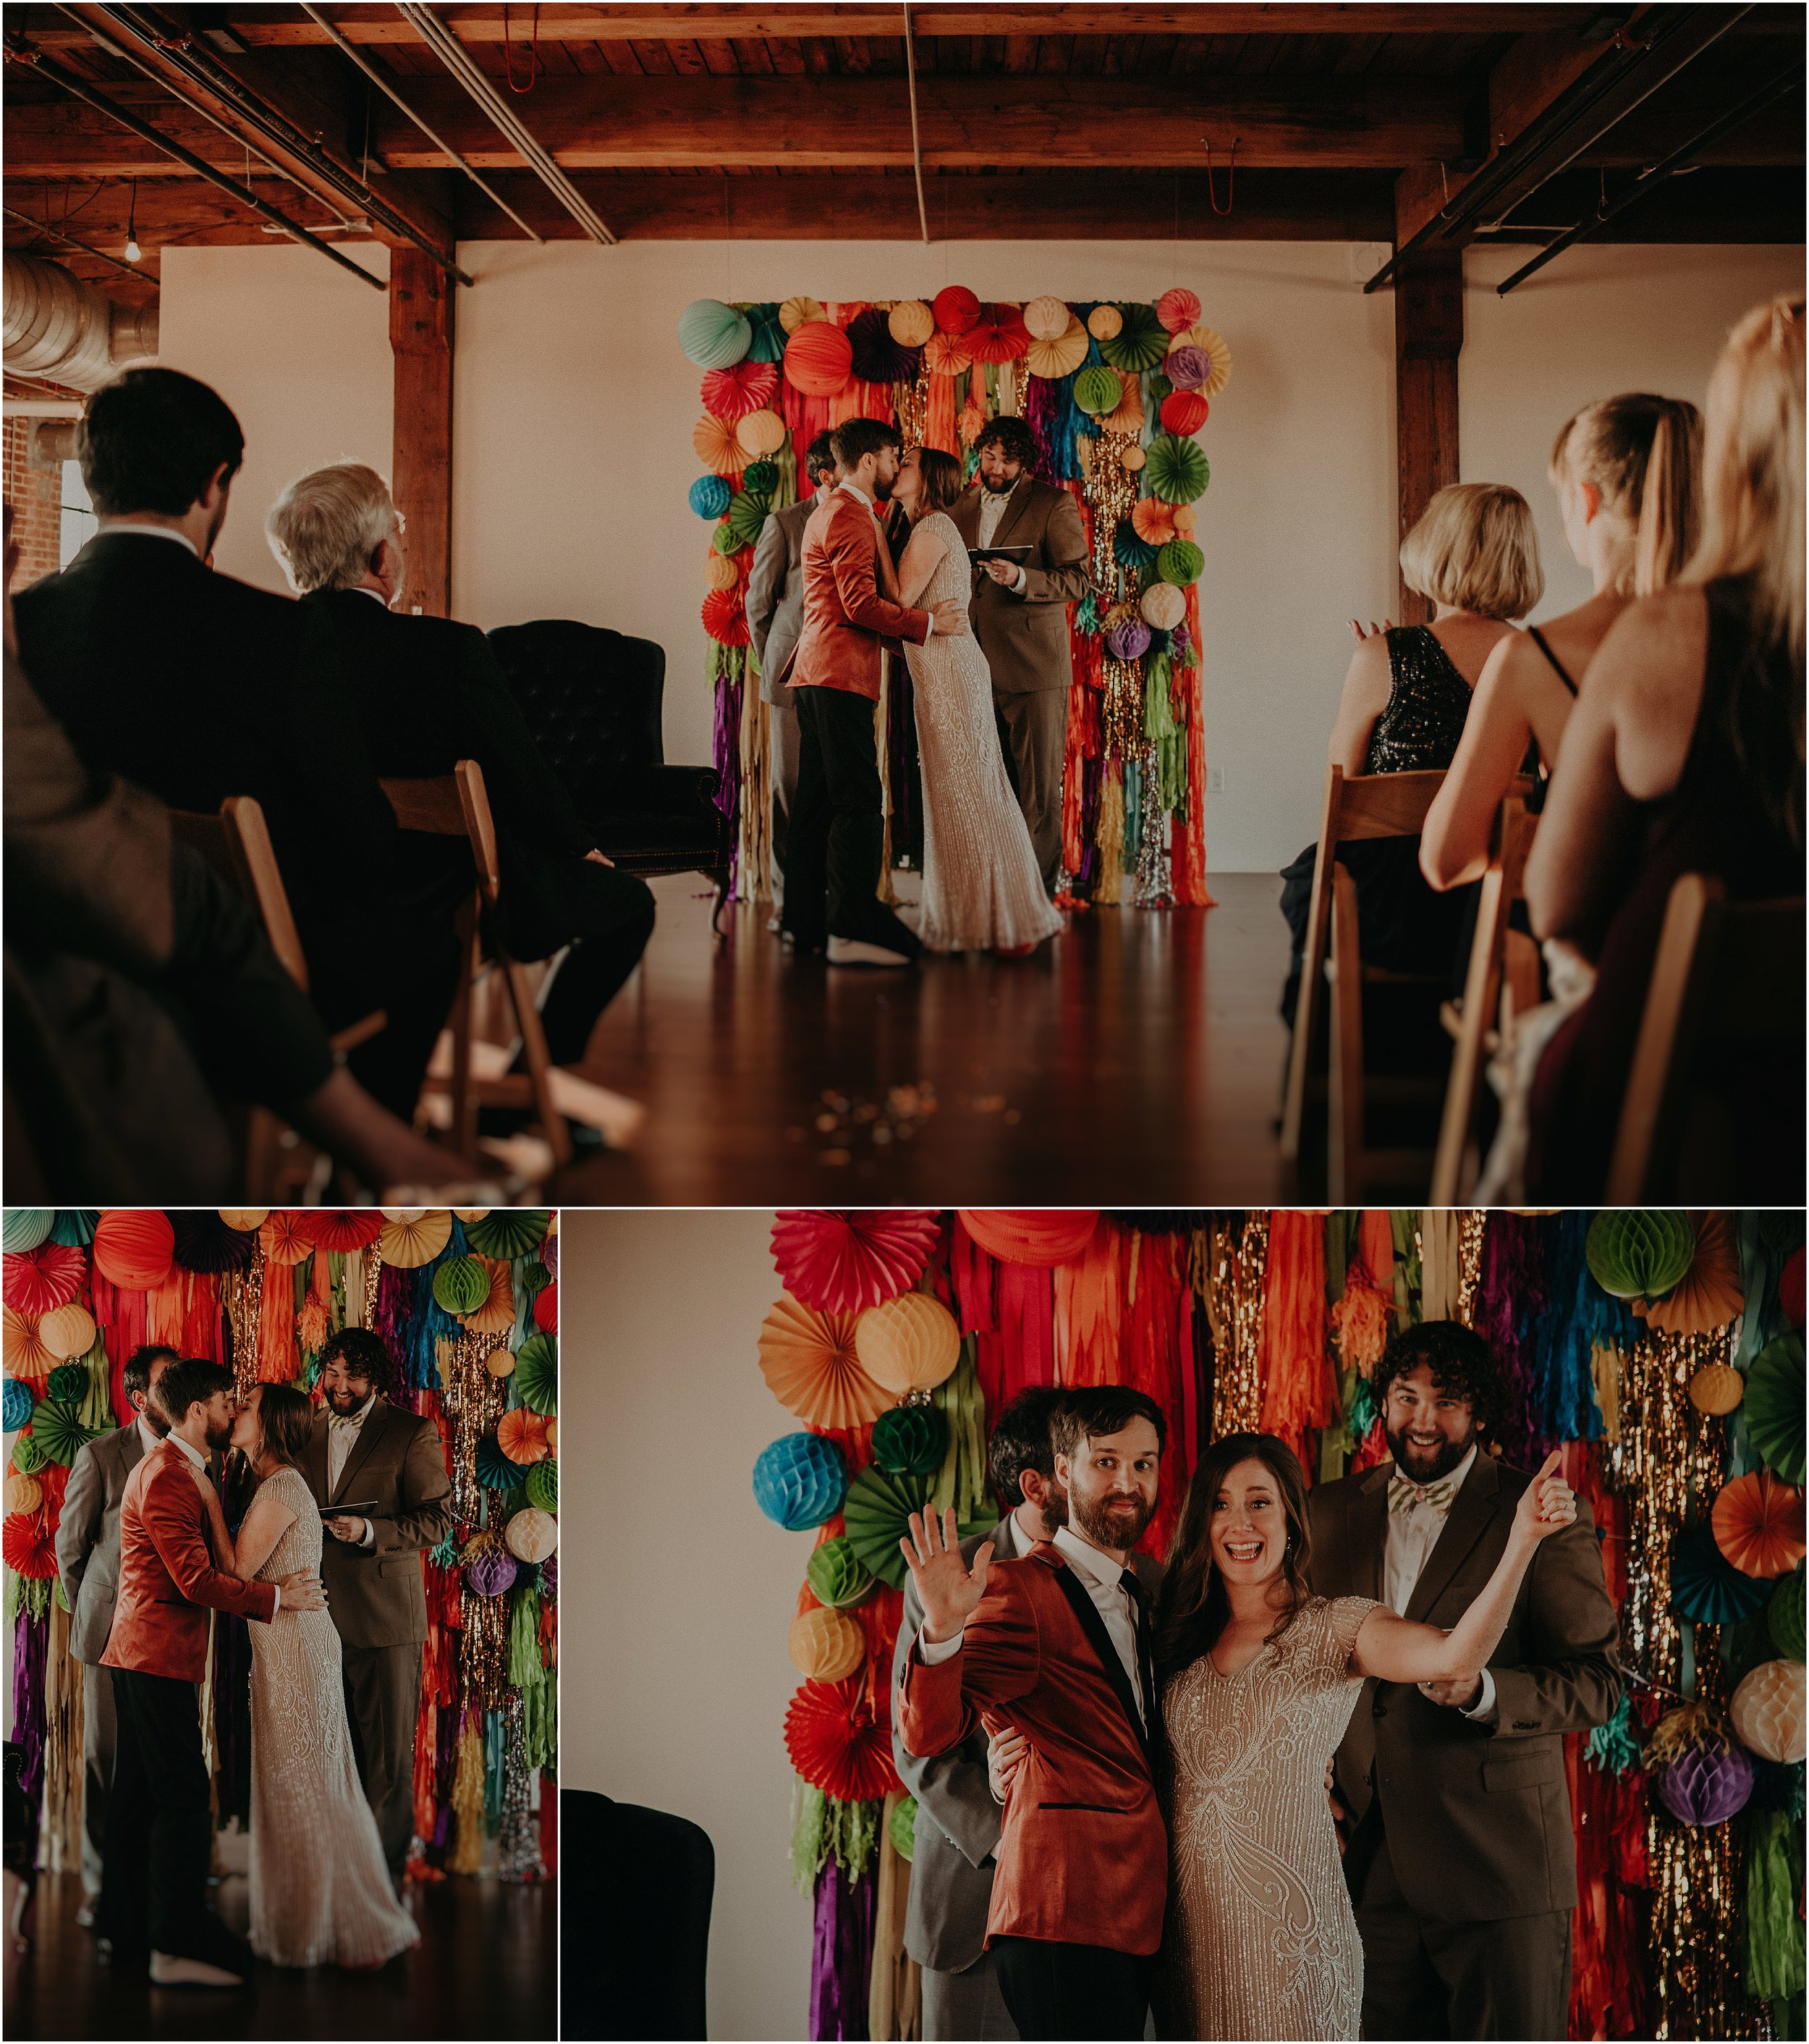 Exciting festival inspired ceremony and the bride and groom share their first kiss